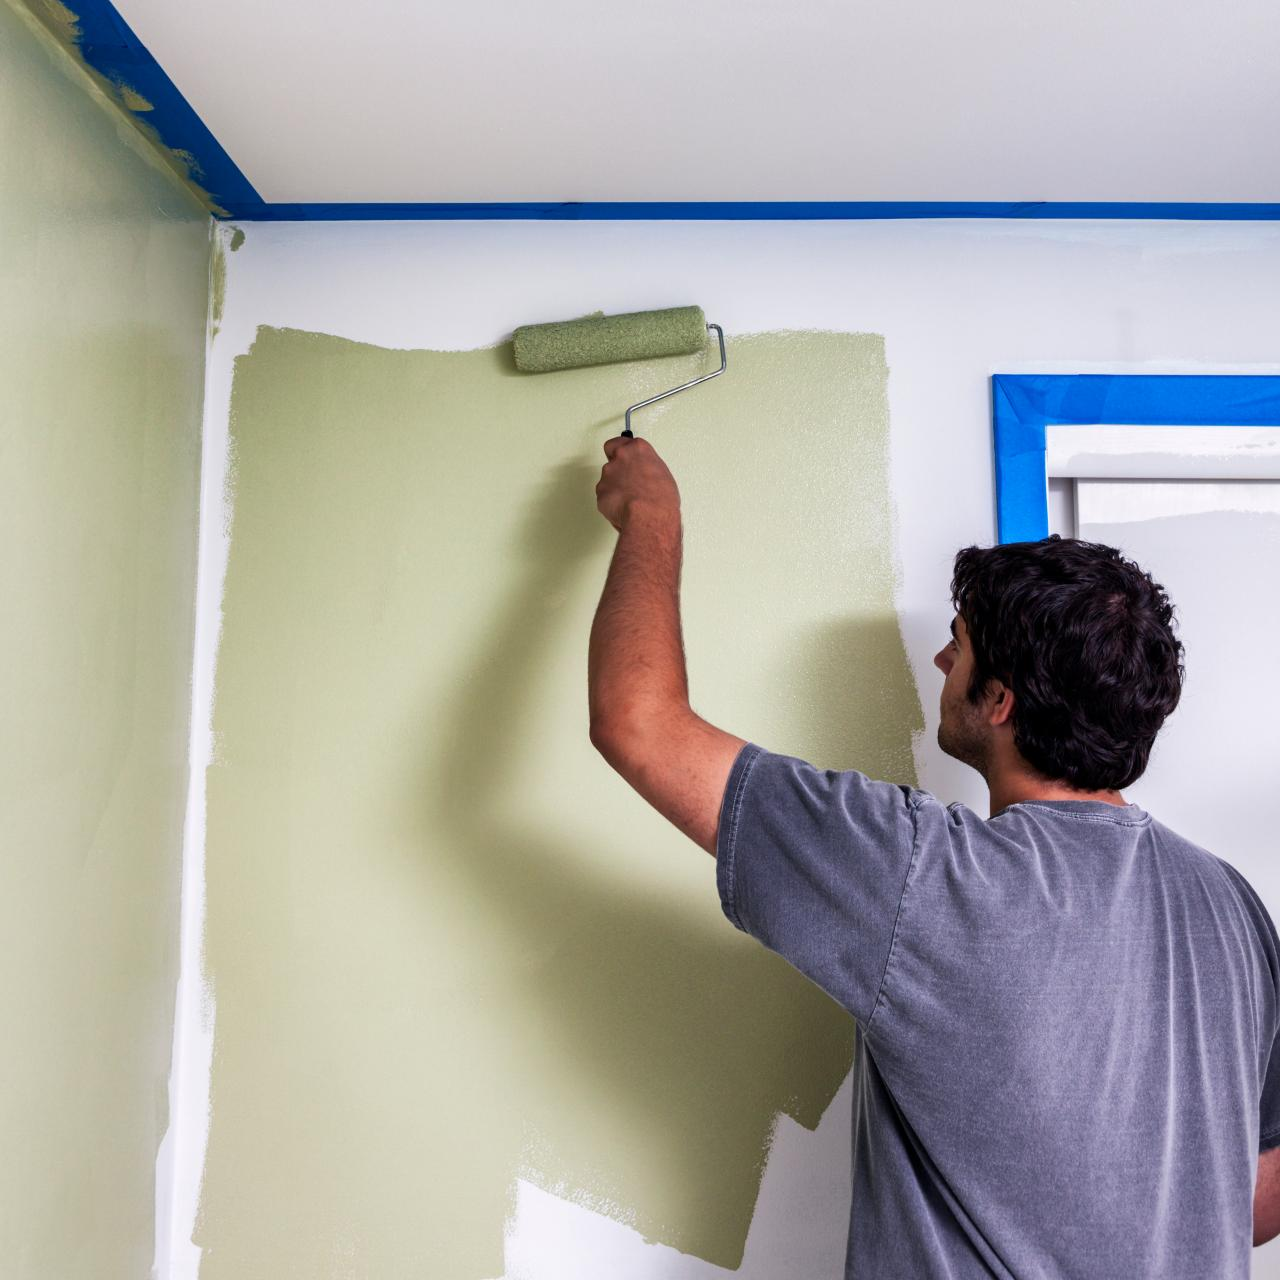 15 painting mistakes to avoid diy skimping on brushes and roller covers to save money rubansaba